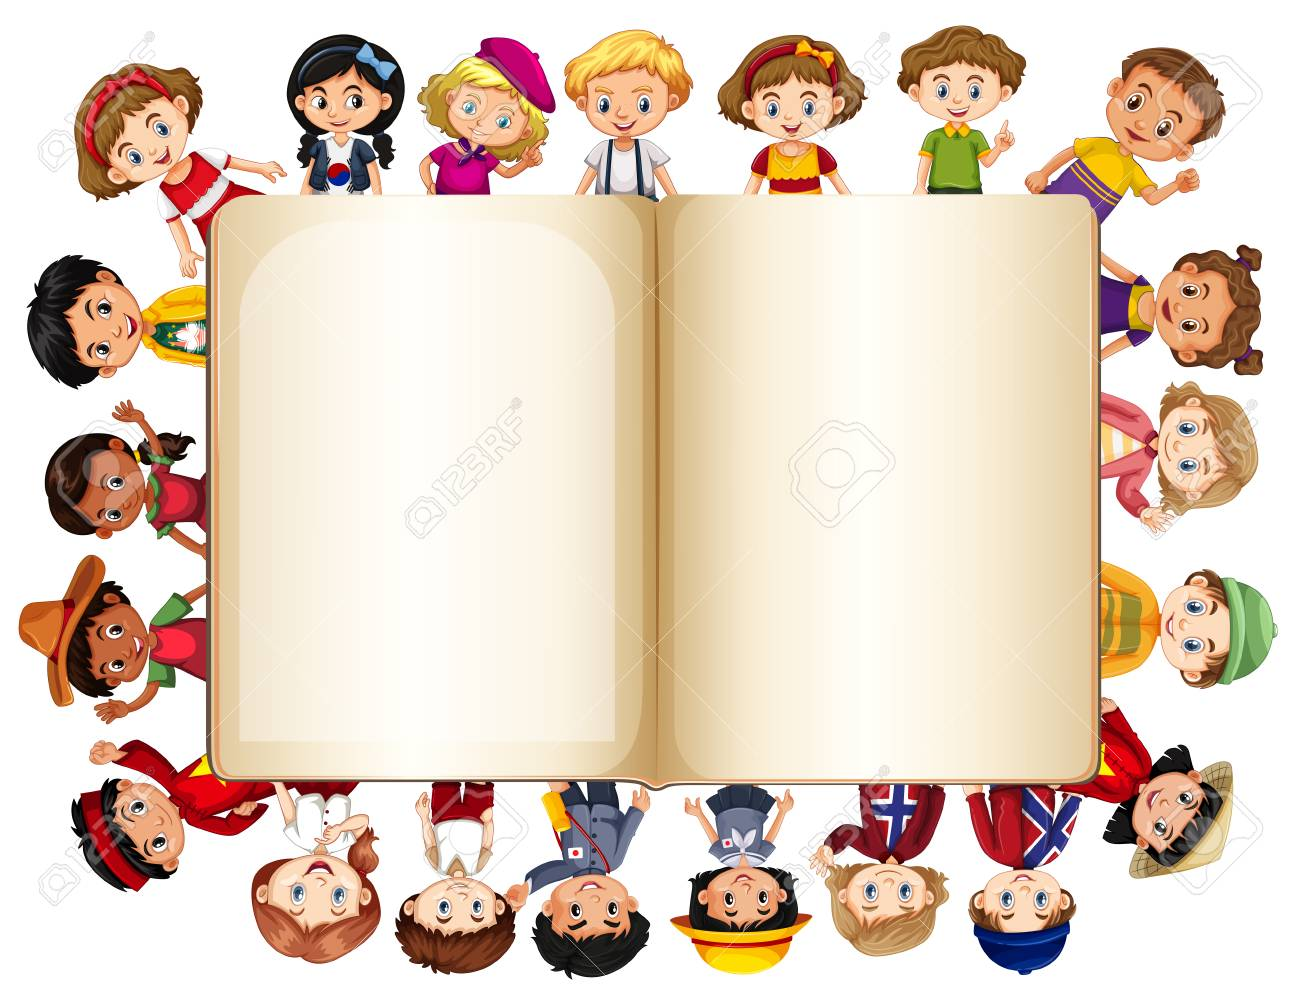 Blank Book Template With Children On Border Illustration Royalty